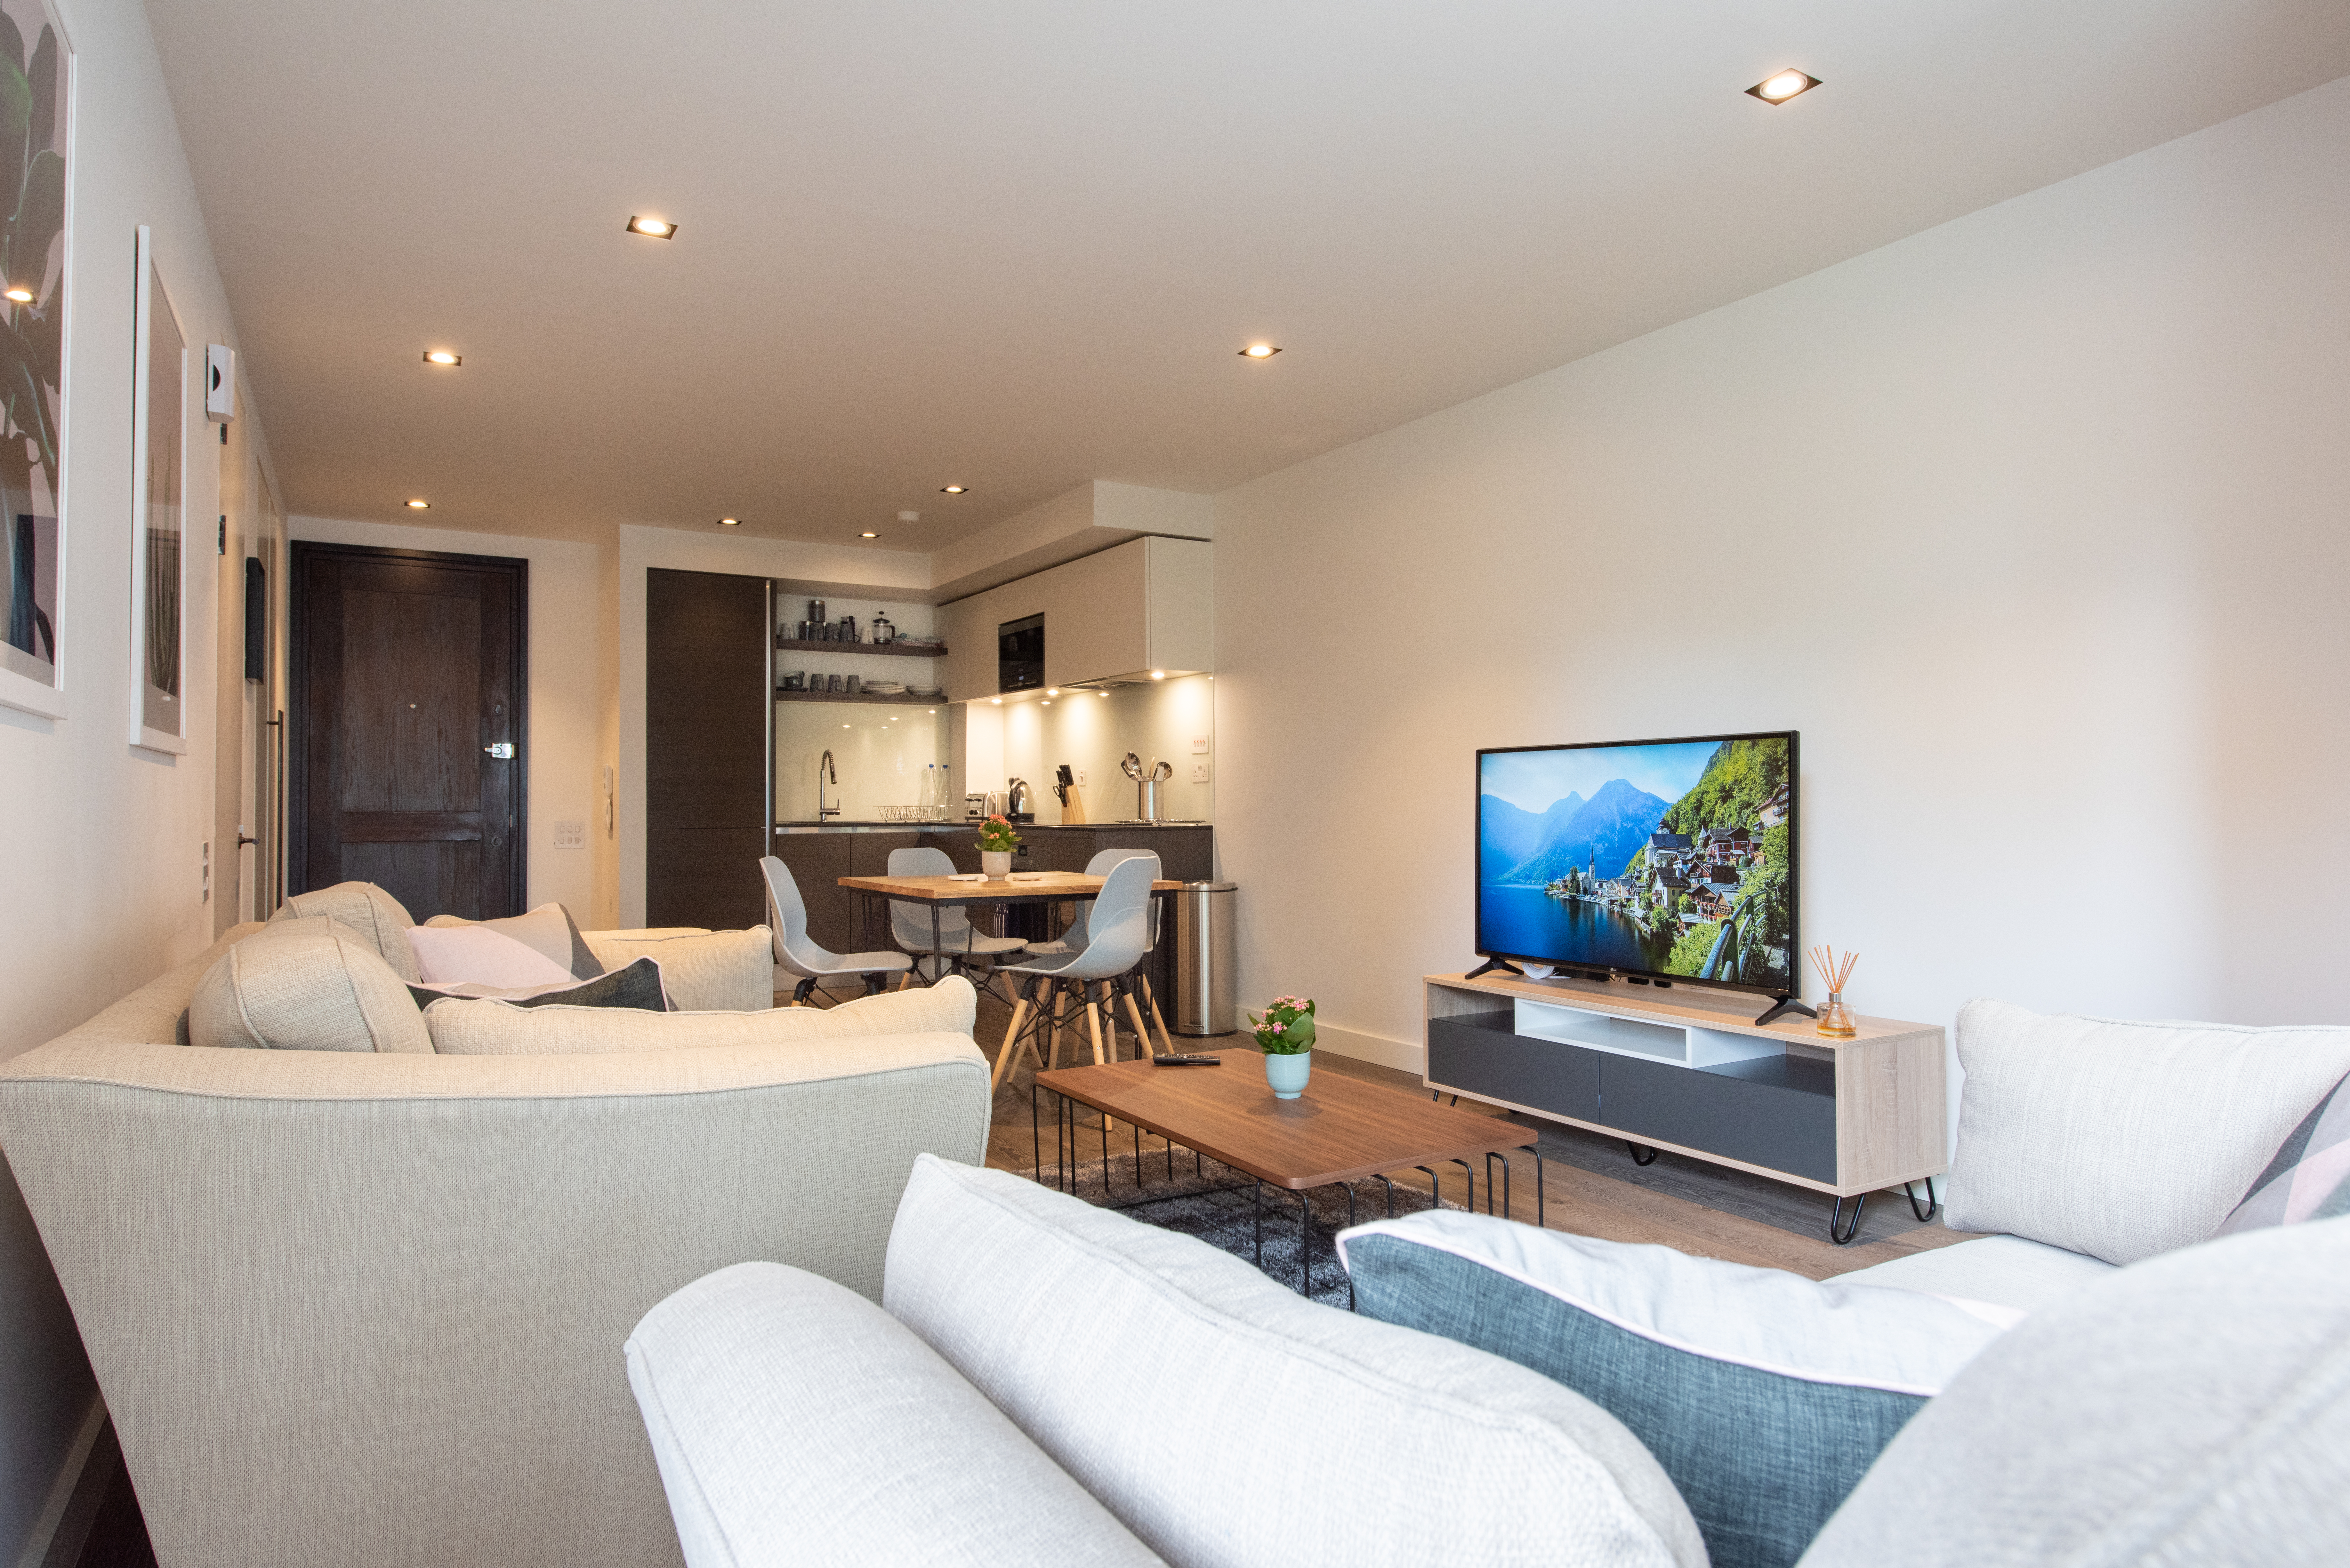 - LYVLY Flat11 29 Macaulay Road LY2 0887 HDR FULL - Lyvly scores $4.6M for its members-based shared living and rental platform